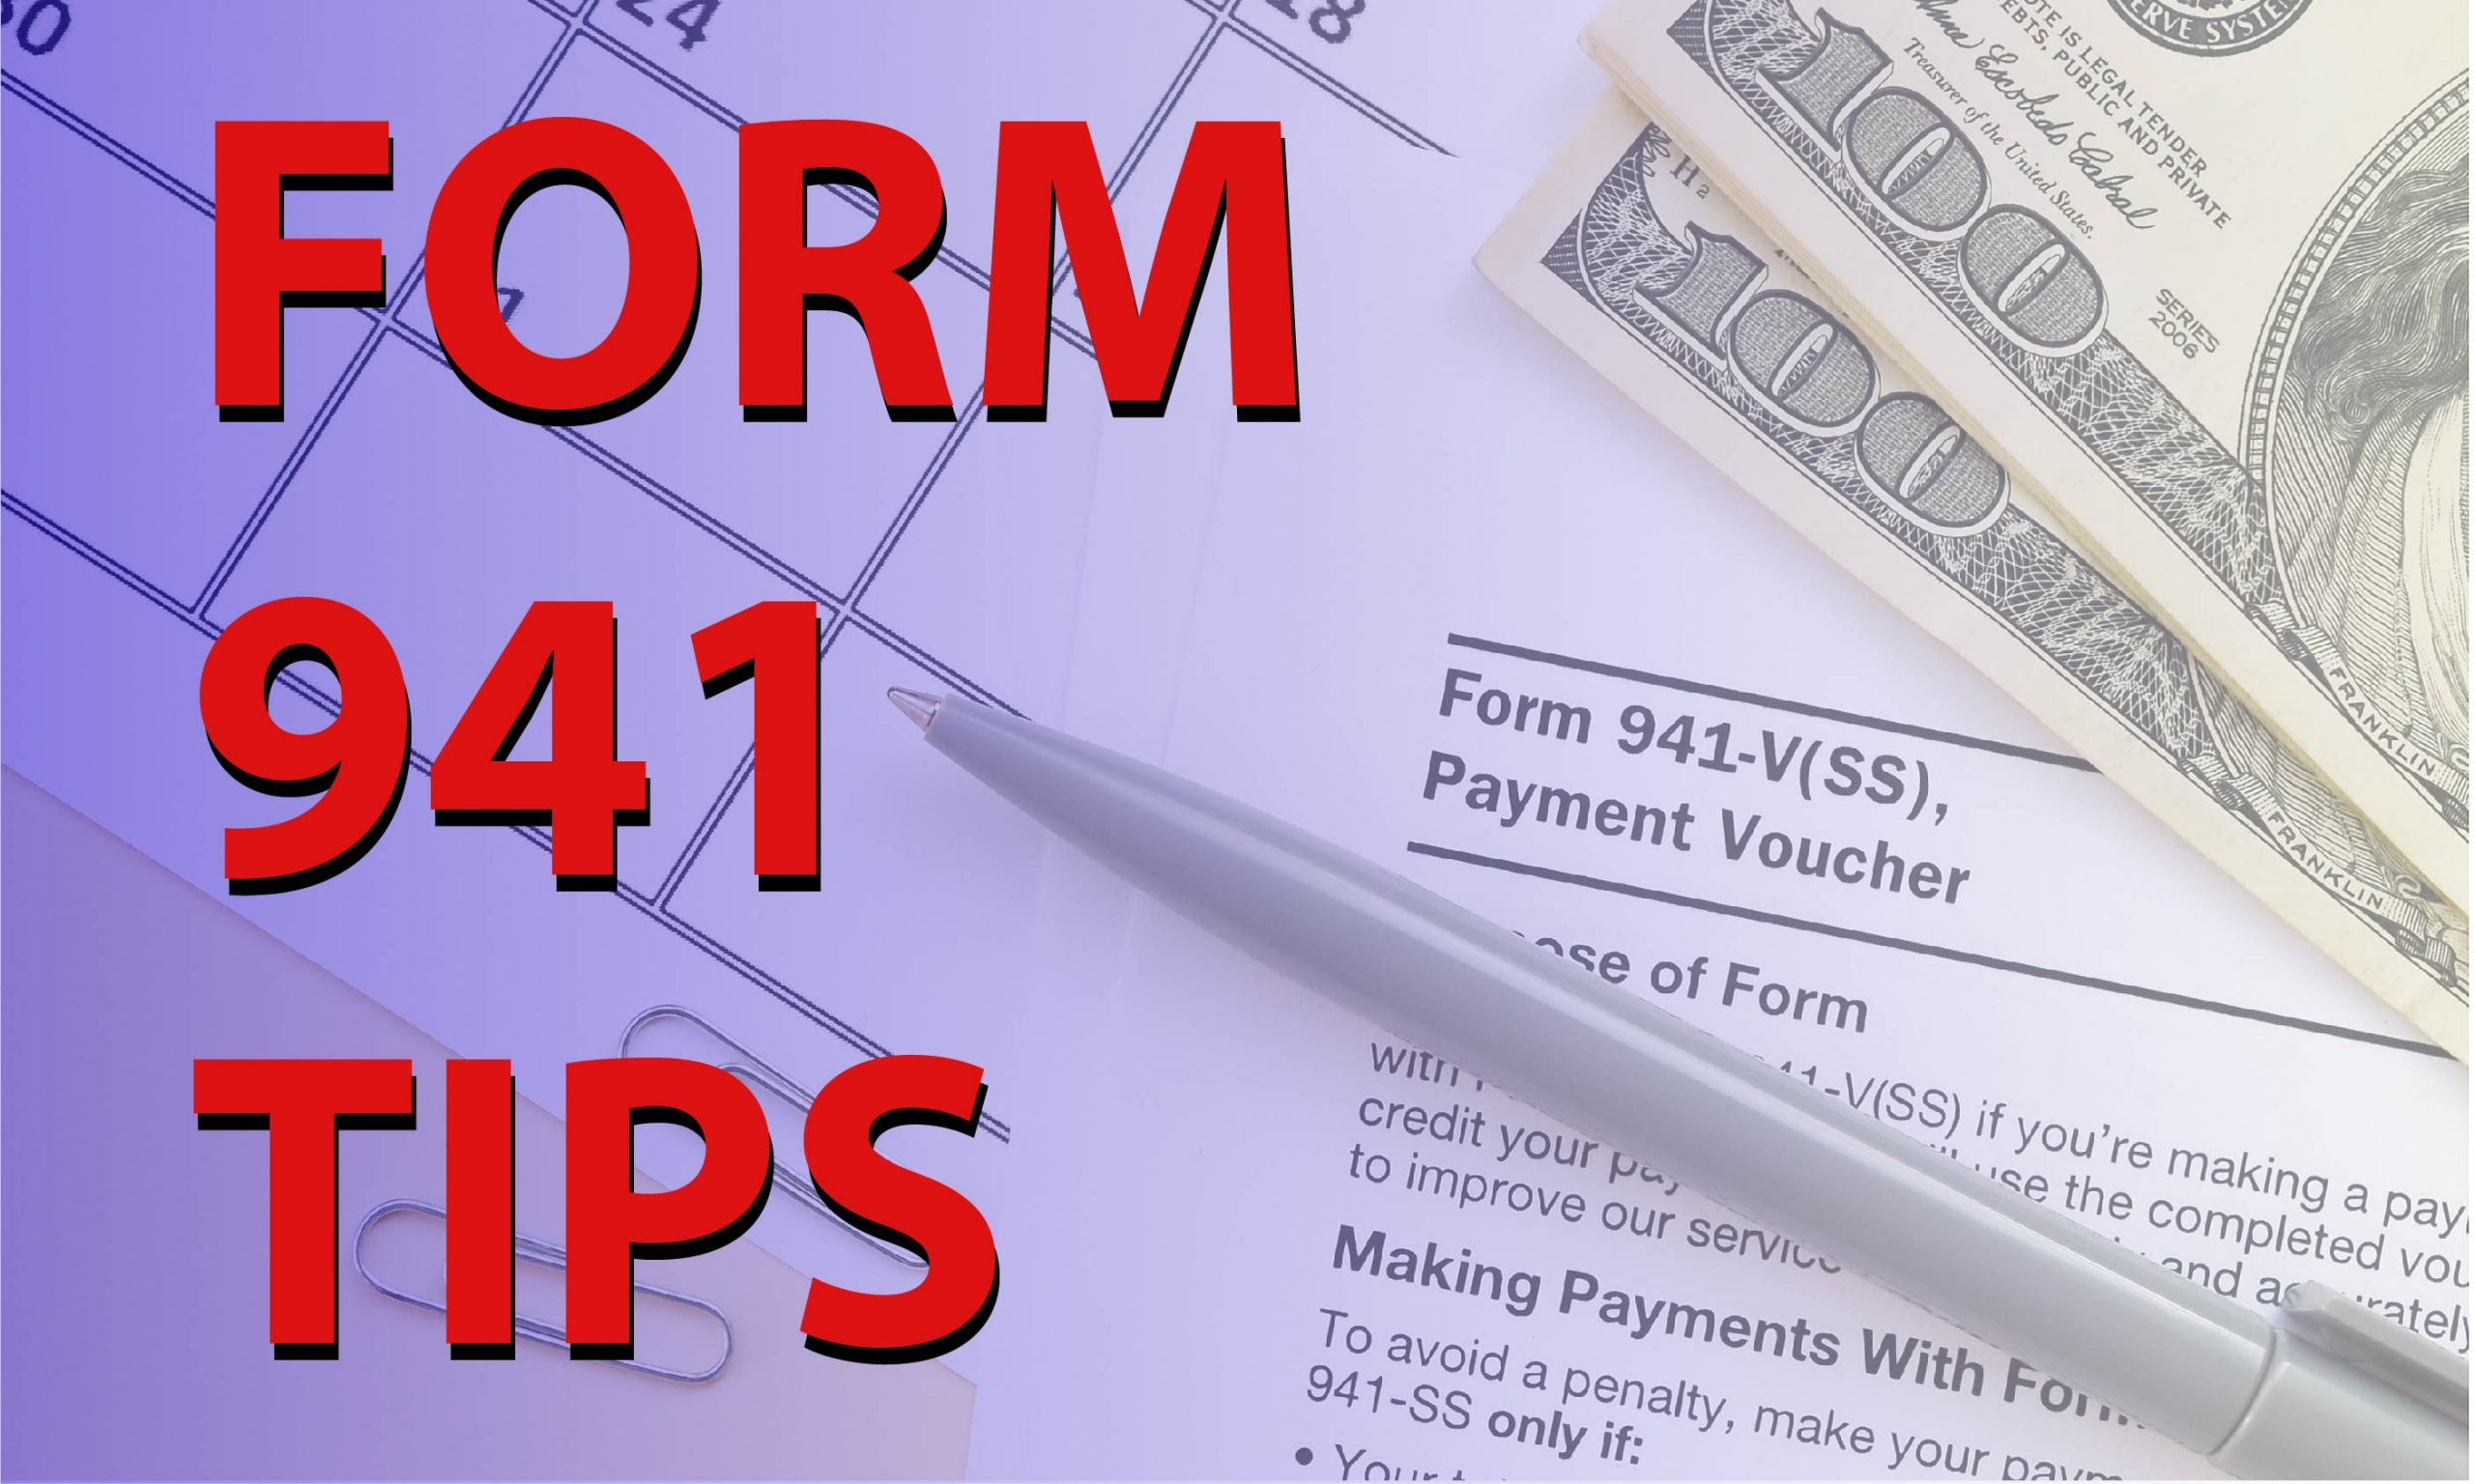 Form 941 Tips